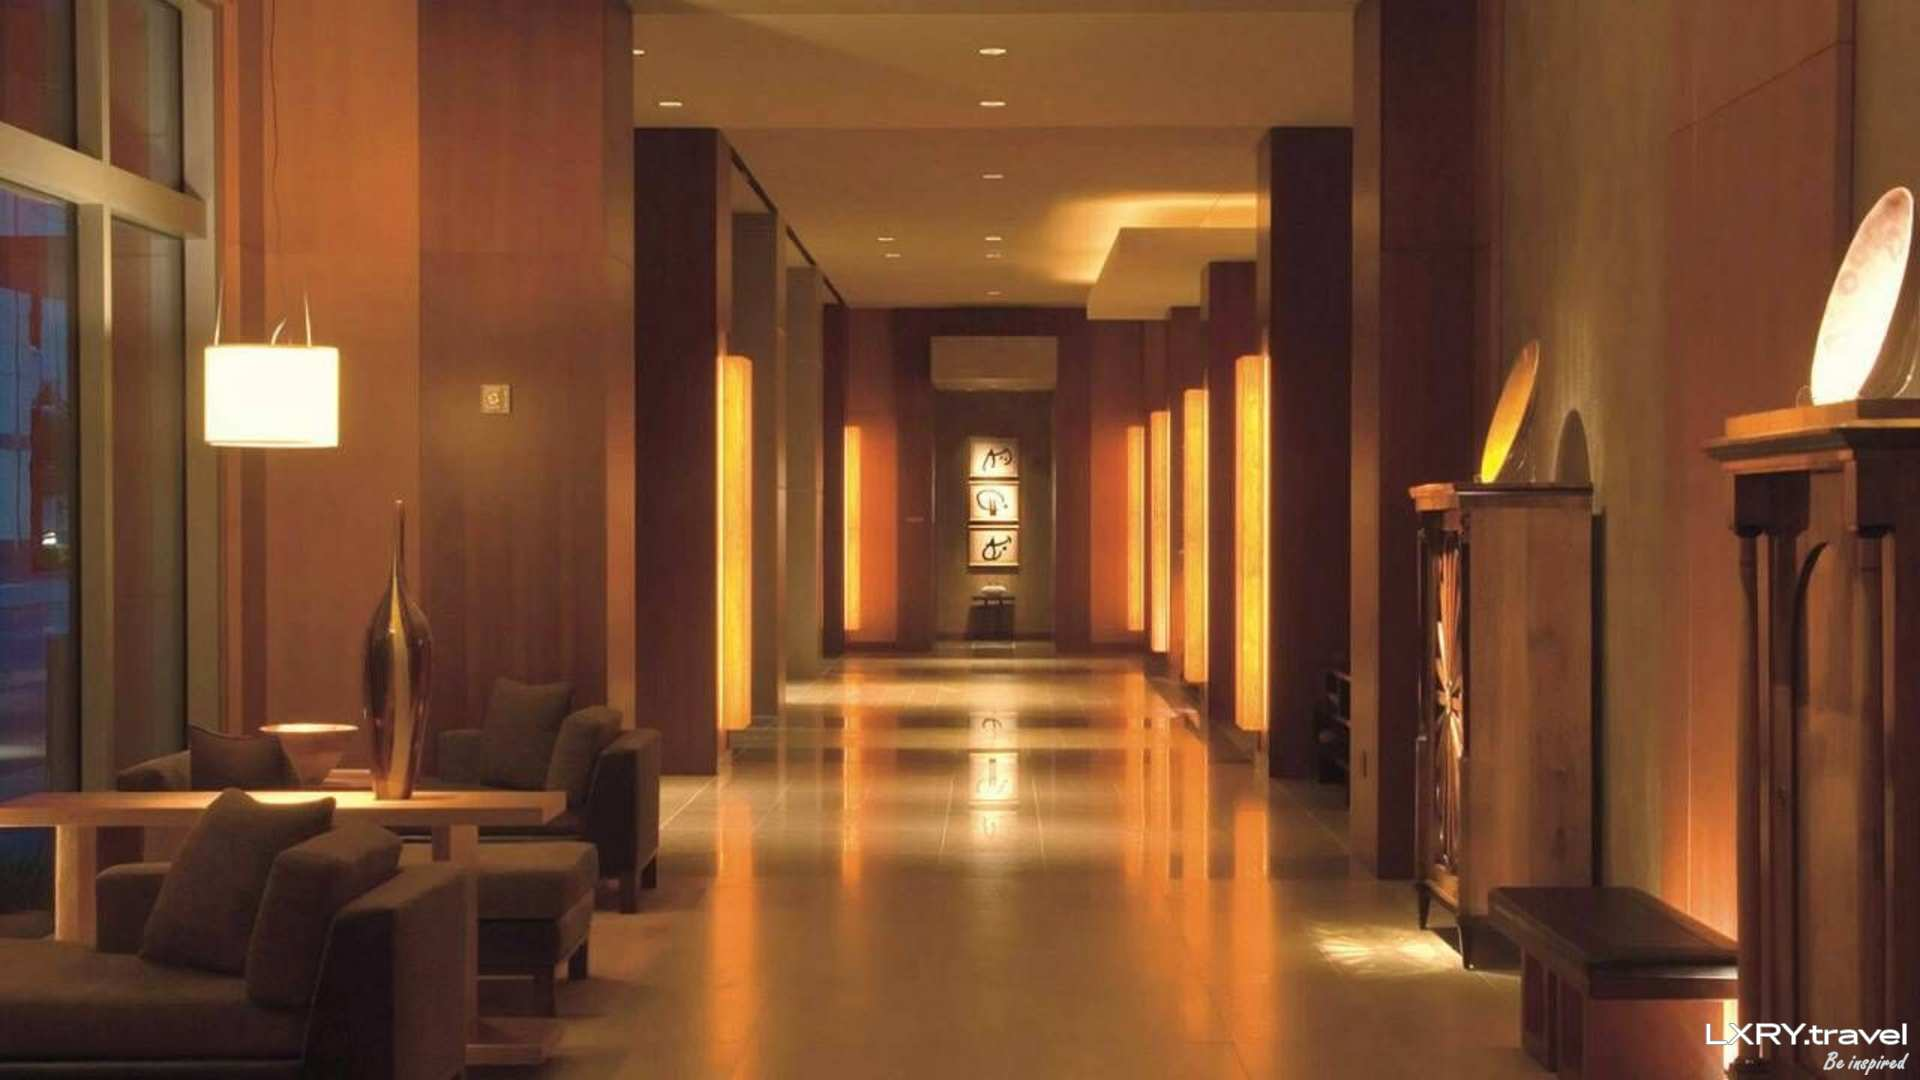 Four Seasons Hotel Silicon Valley at East Palo Alto 9/35